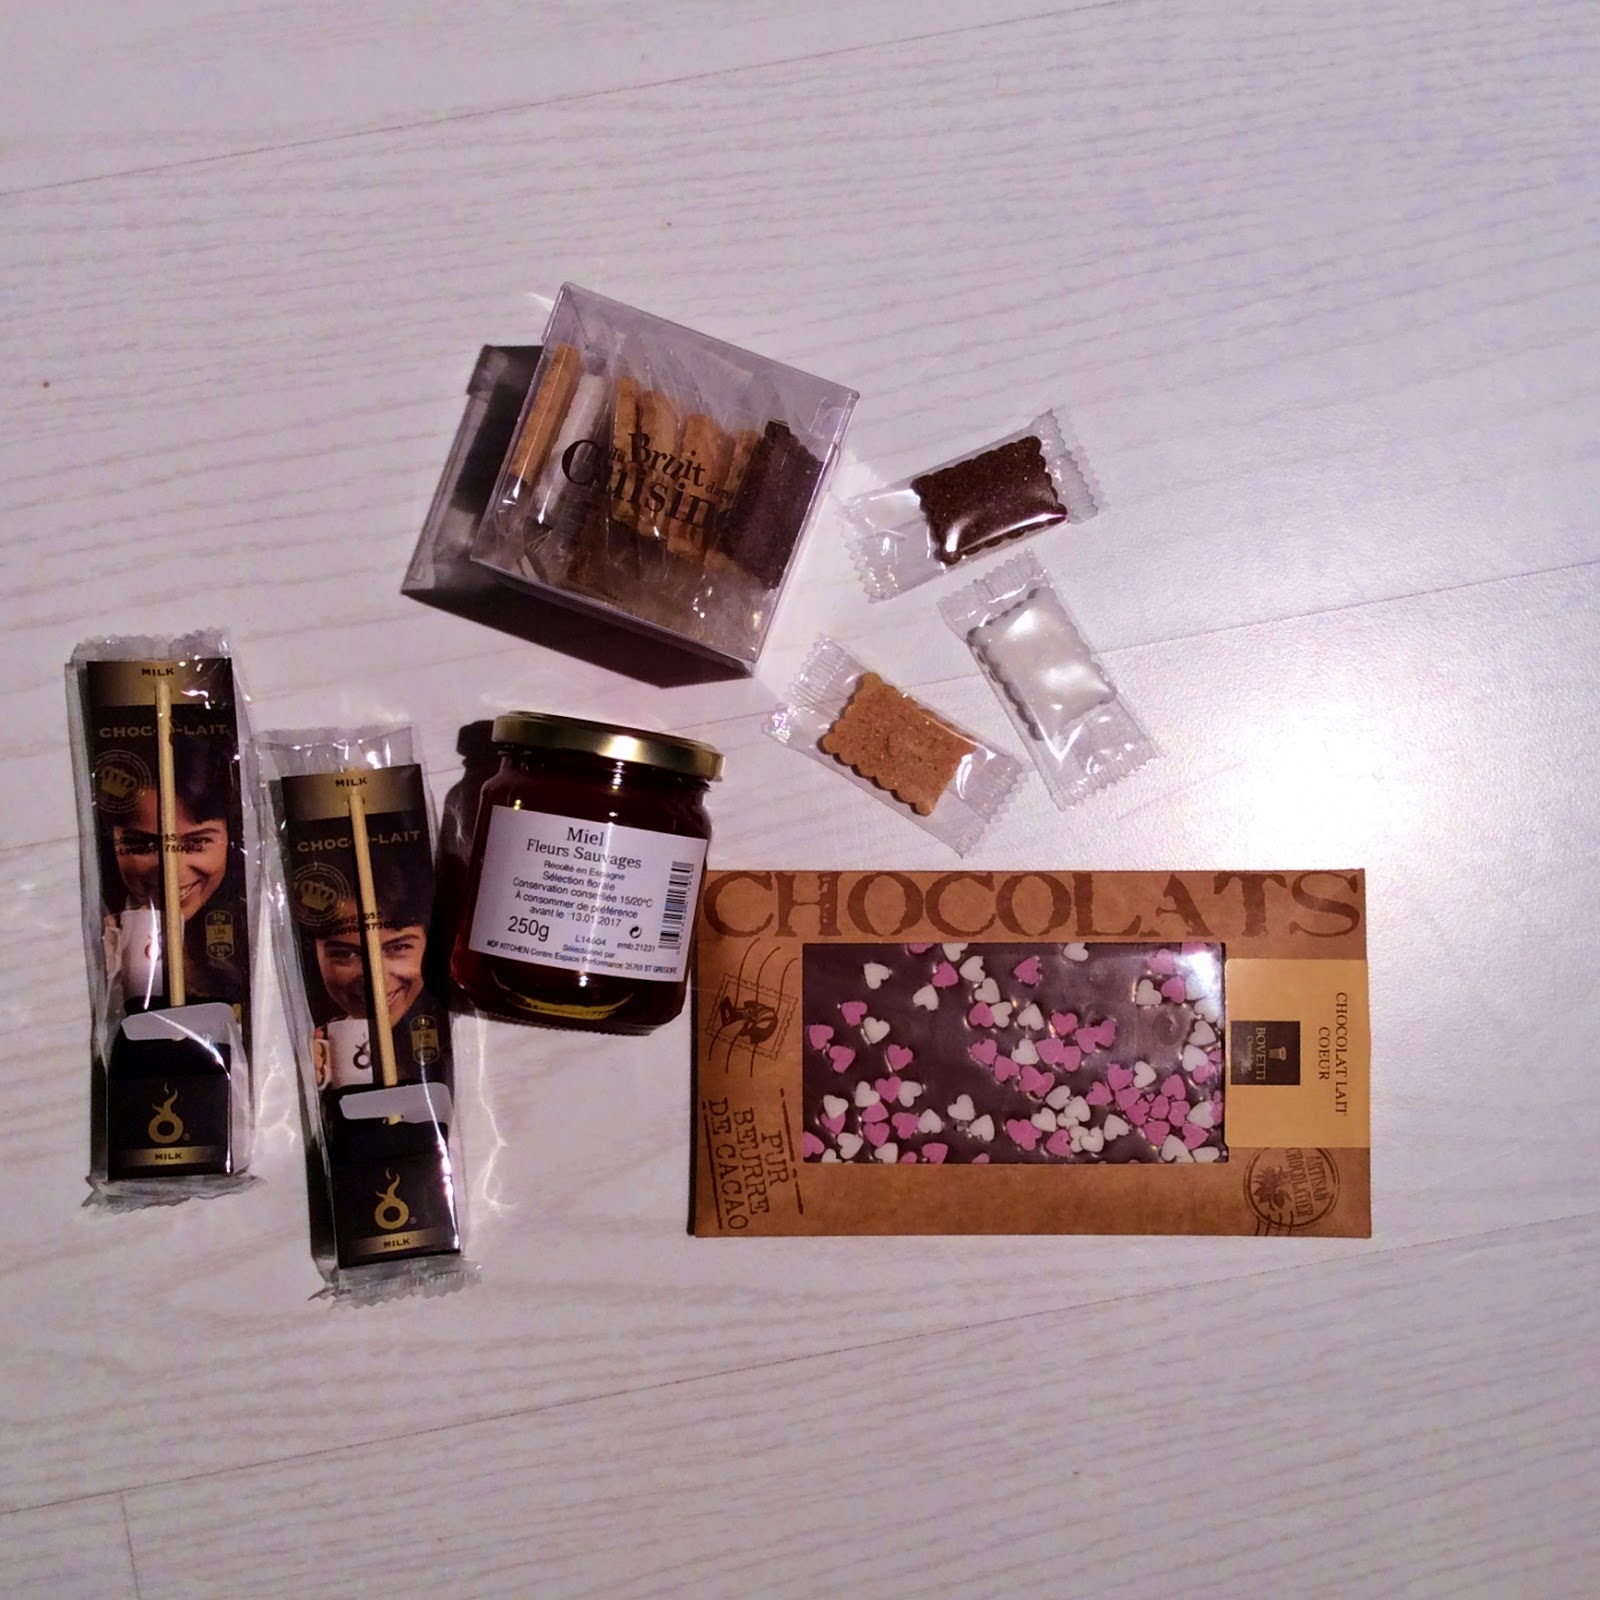 http://www.globeshoppeuse.com/2015/02/mon-shopping-gourmand-special-reconfort.html